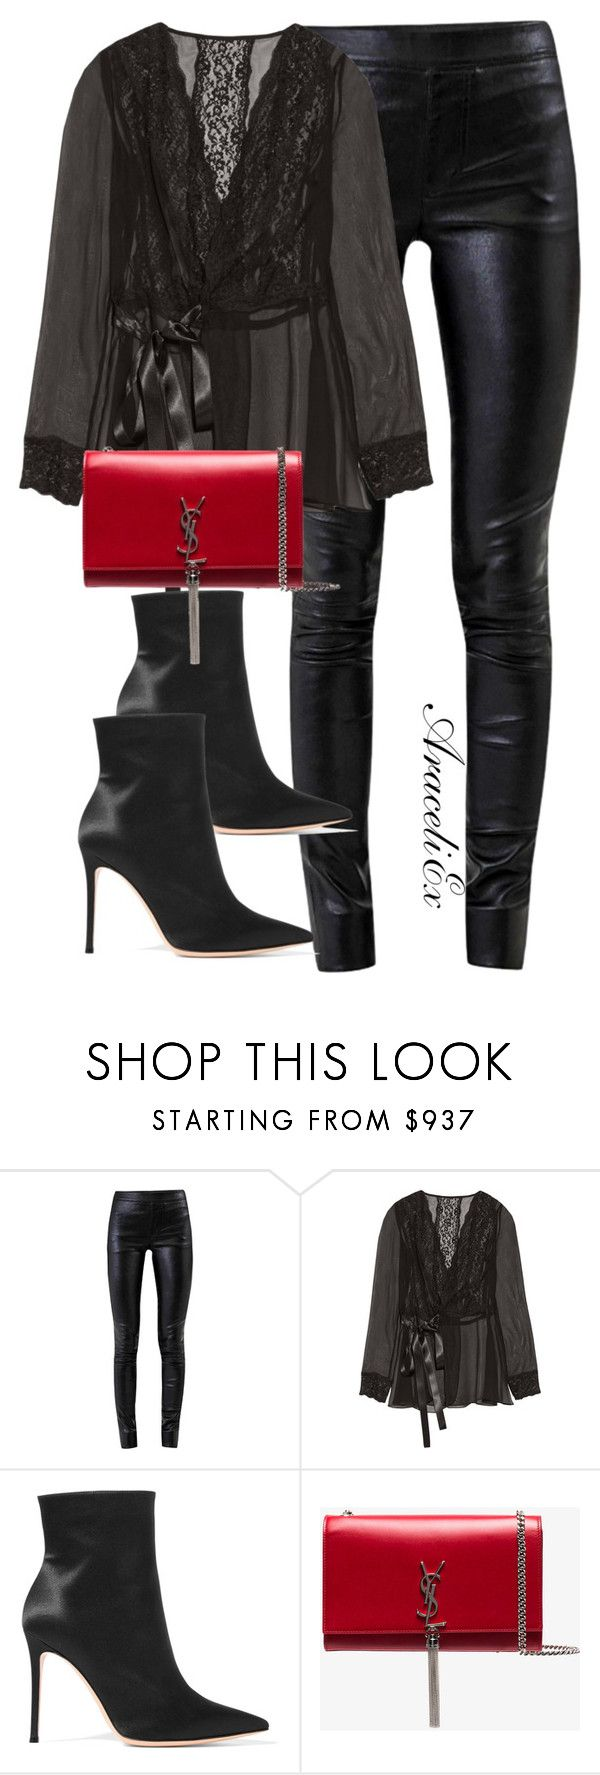 """""""HER"""" by aramarescobar ❤ liked on Polyvore featuring Helmut Lang, Dolce&Gabbana, Gianvito Rossi and Yves Saint Laurent"""